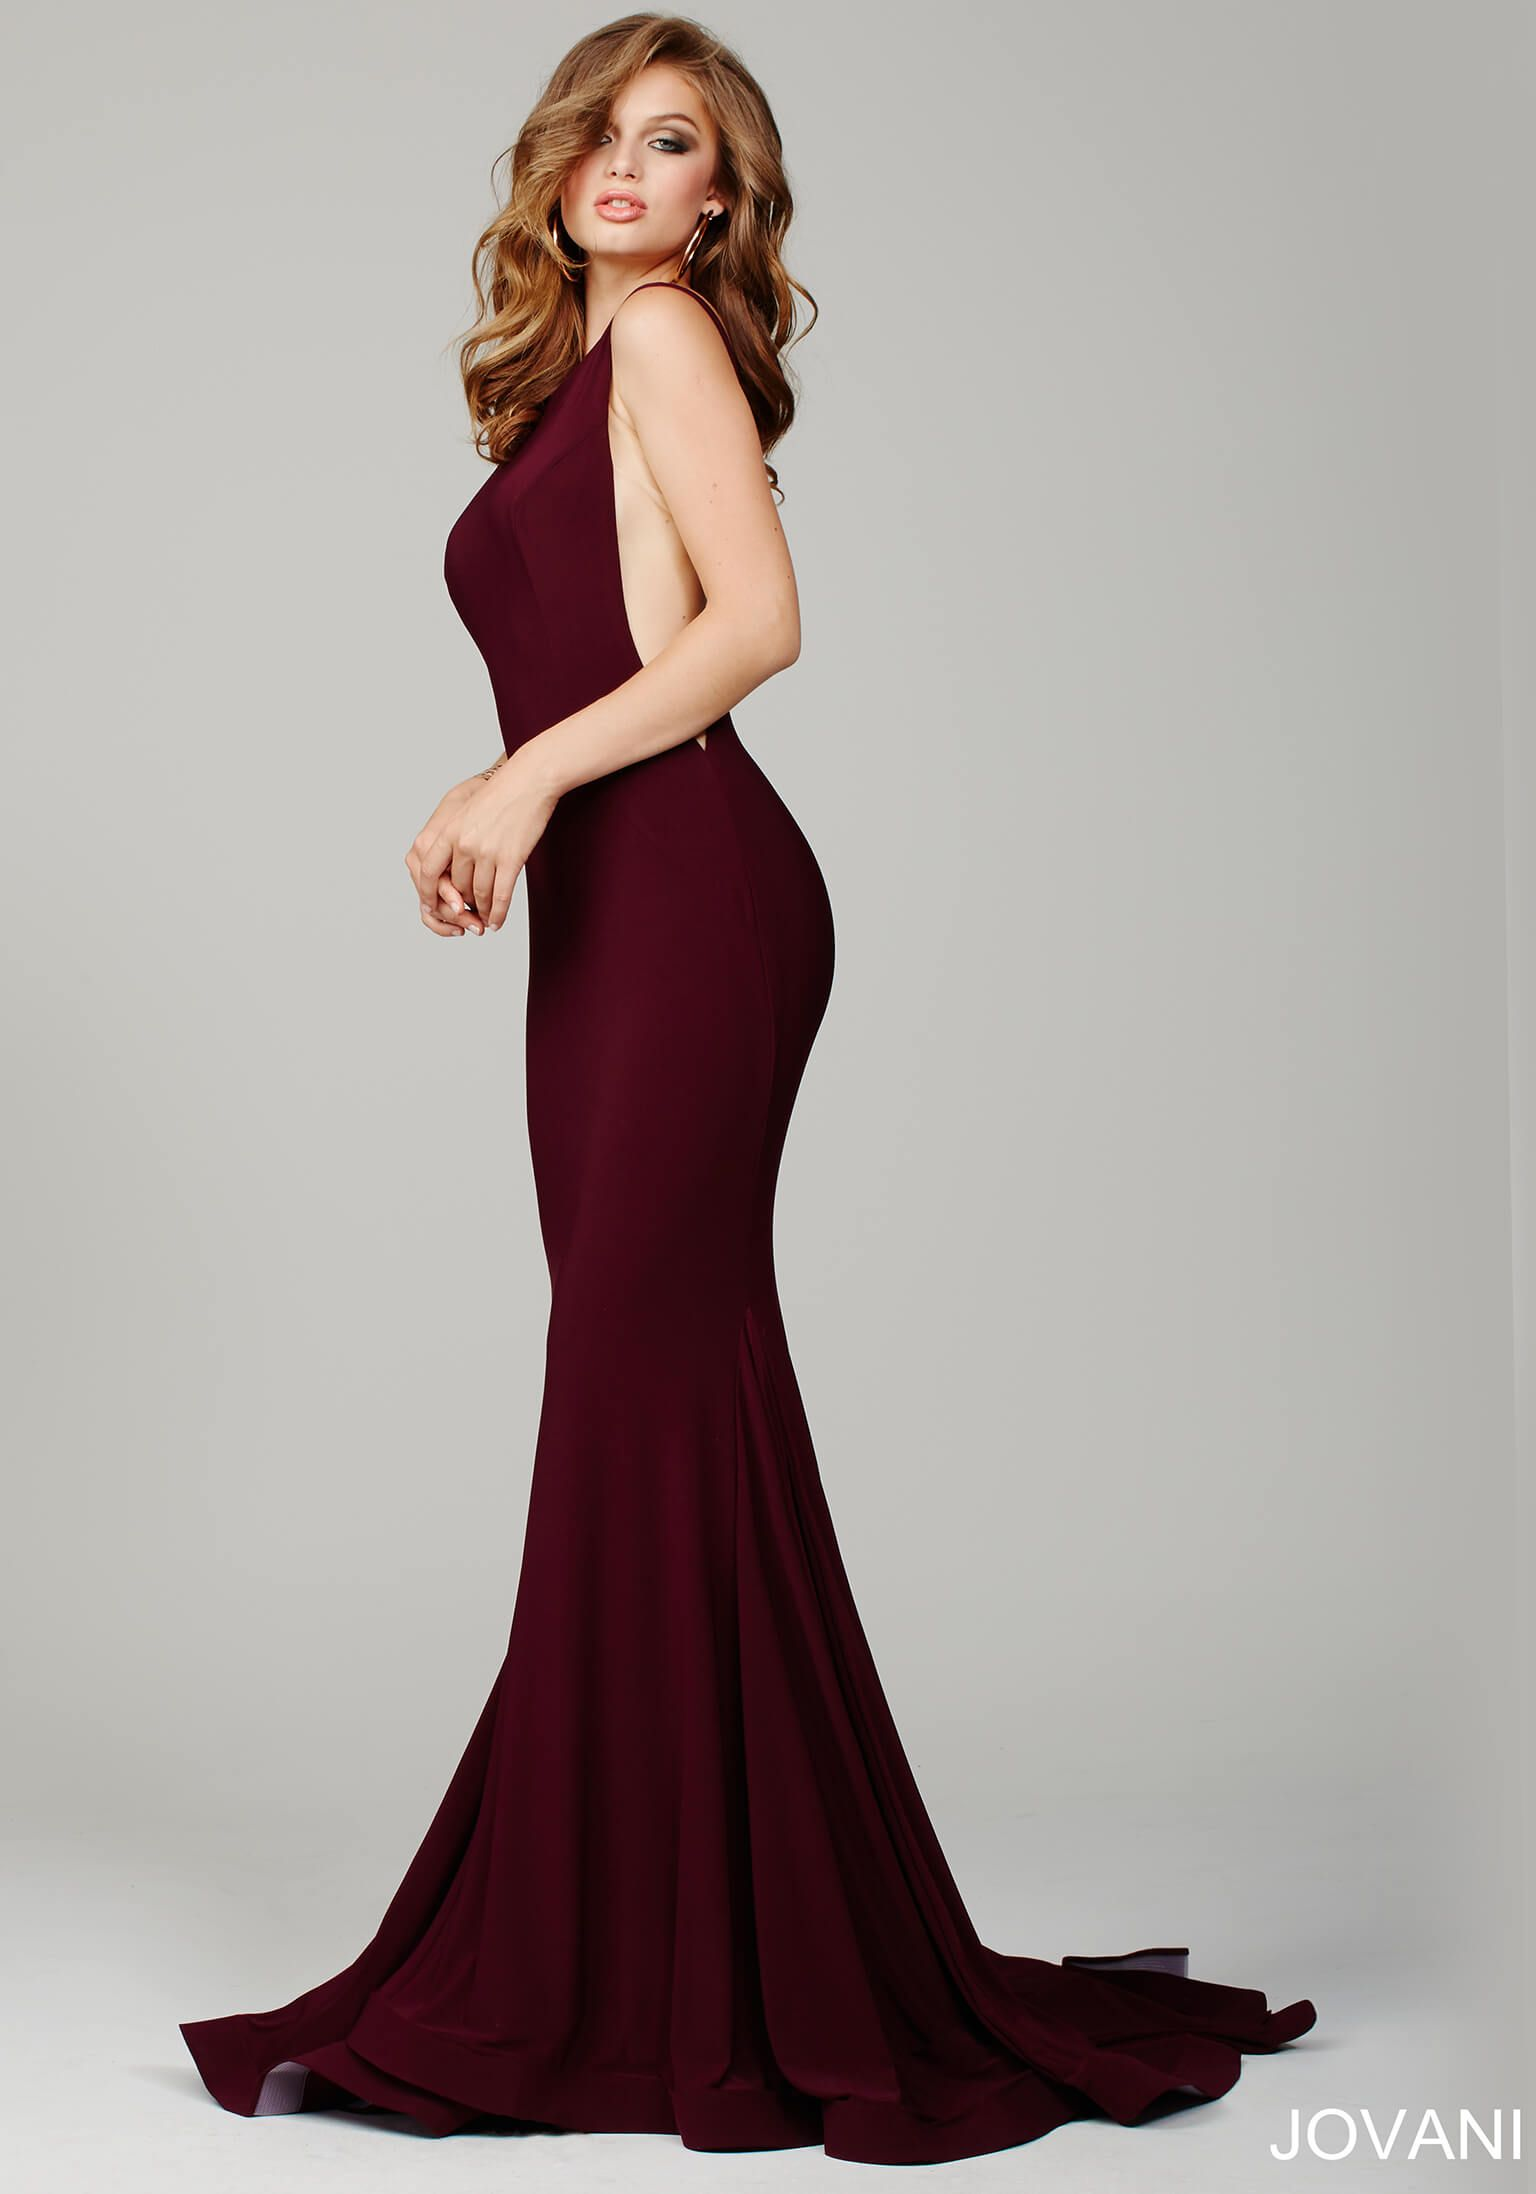 Burgundy Prom Dress by Jovani- This form-fitting prom gown is perfect for  any formal occasion. View more prom dressed by Jovani. 4b47313f2efe